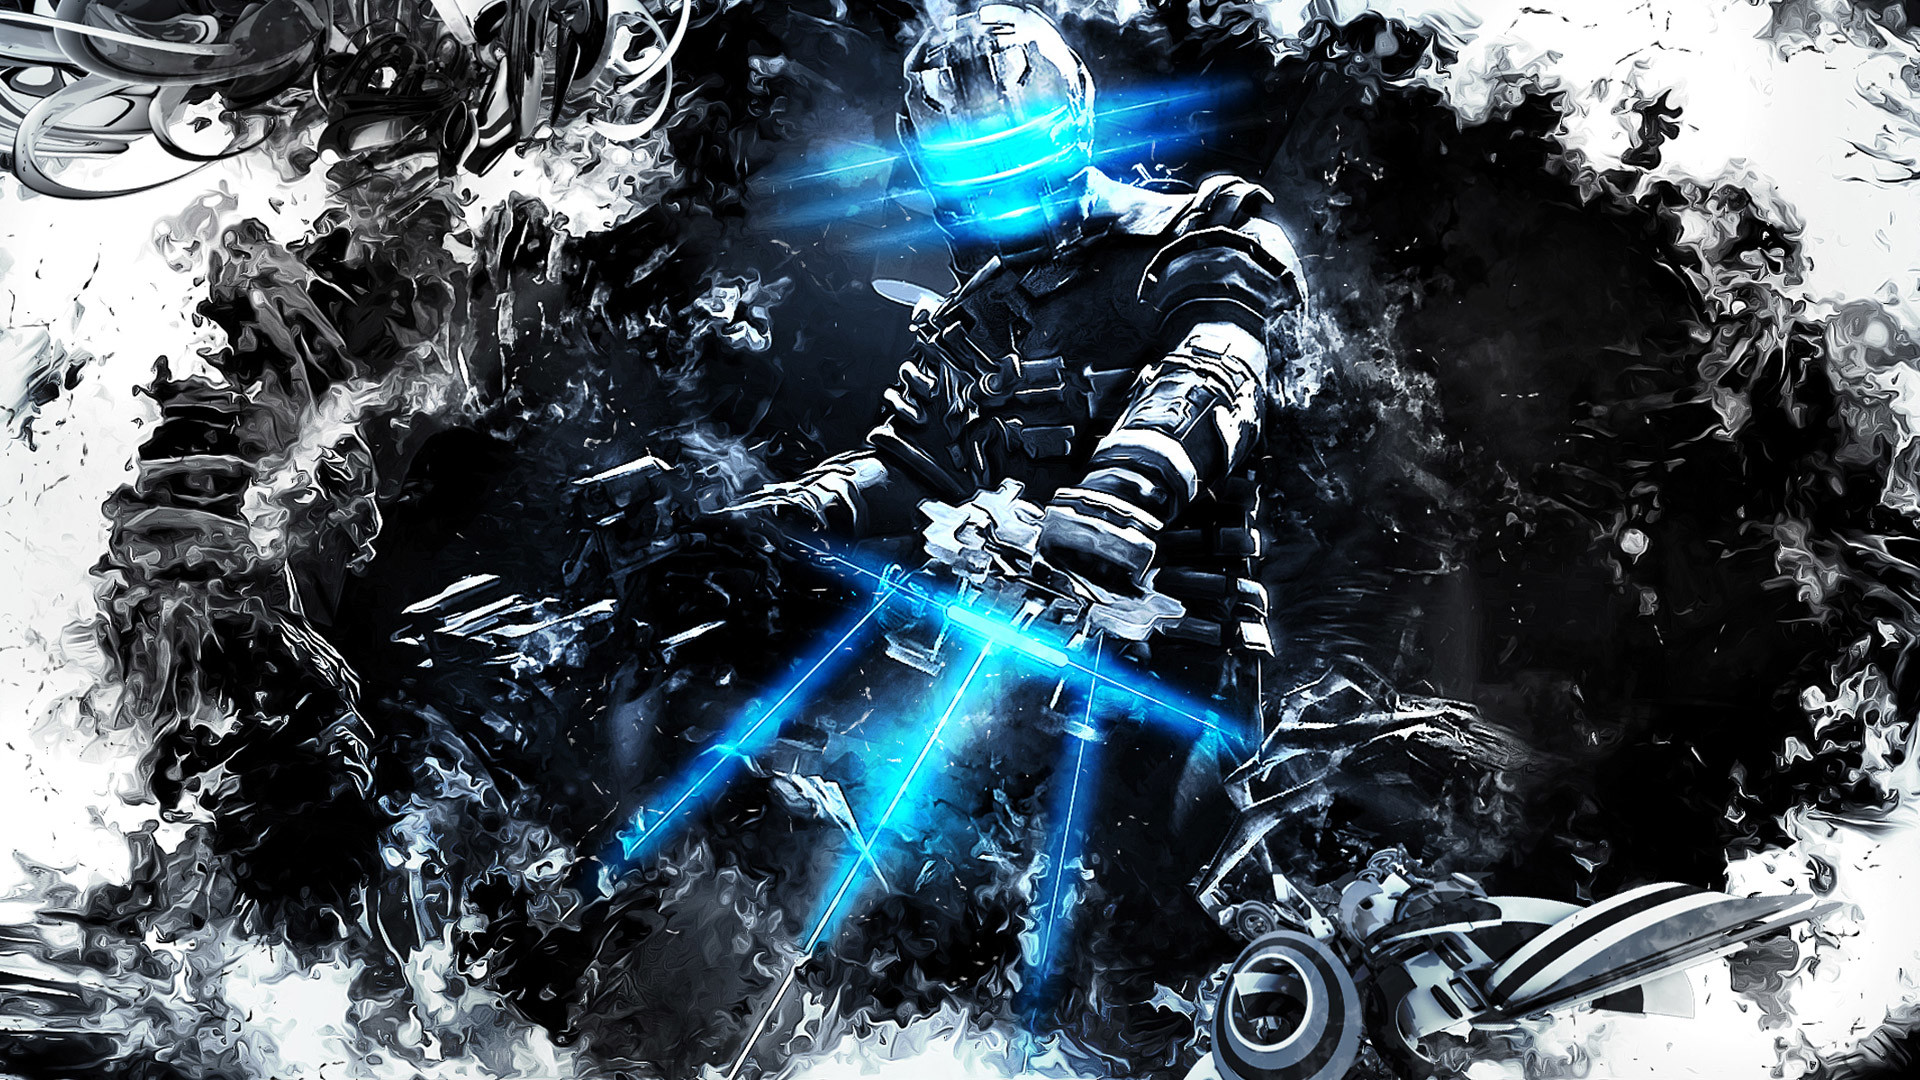 1920x1080 Dead Space 3 Wallpaper in